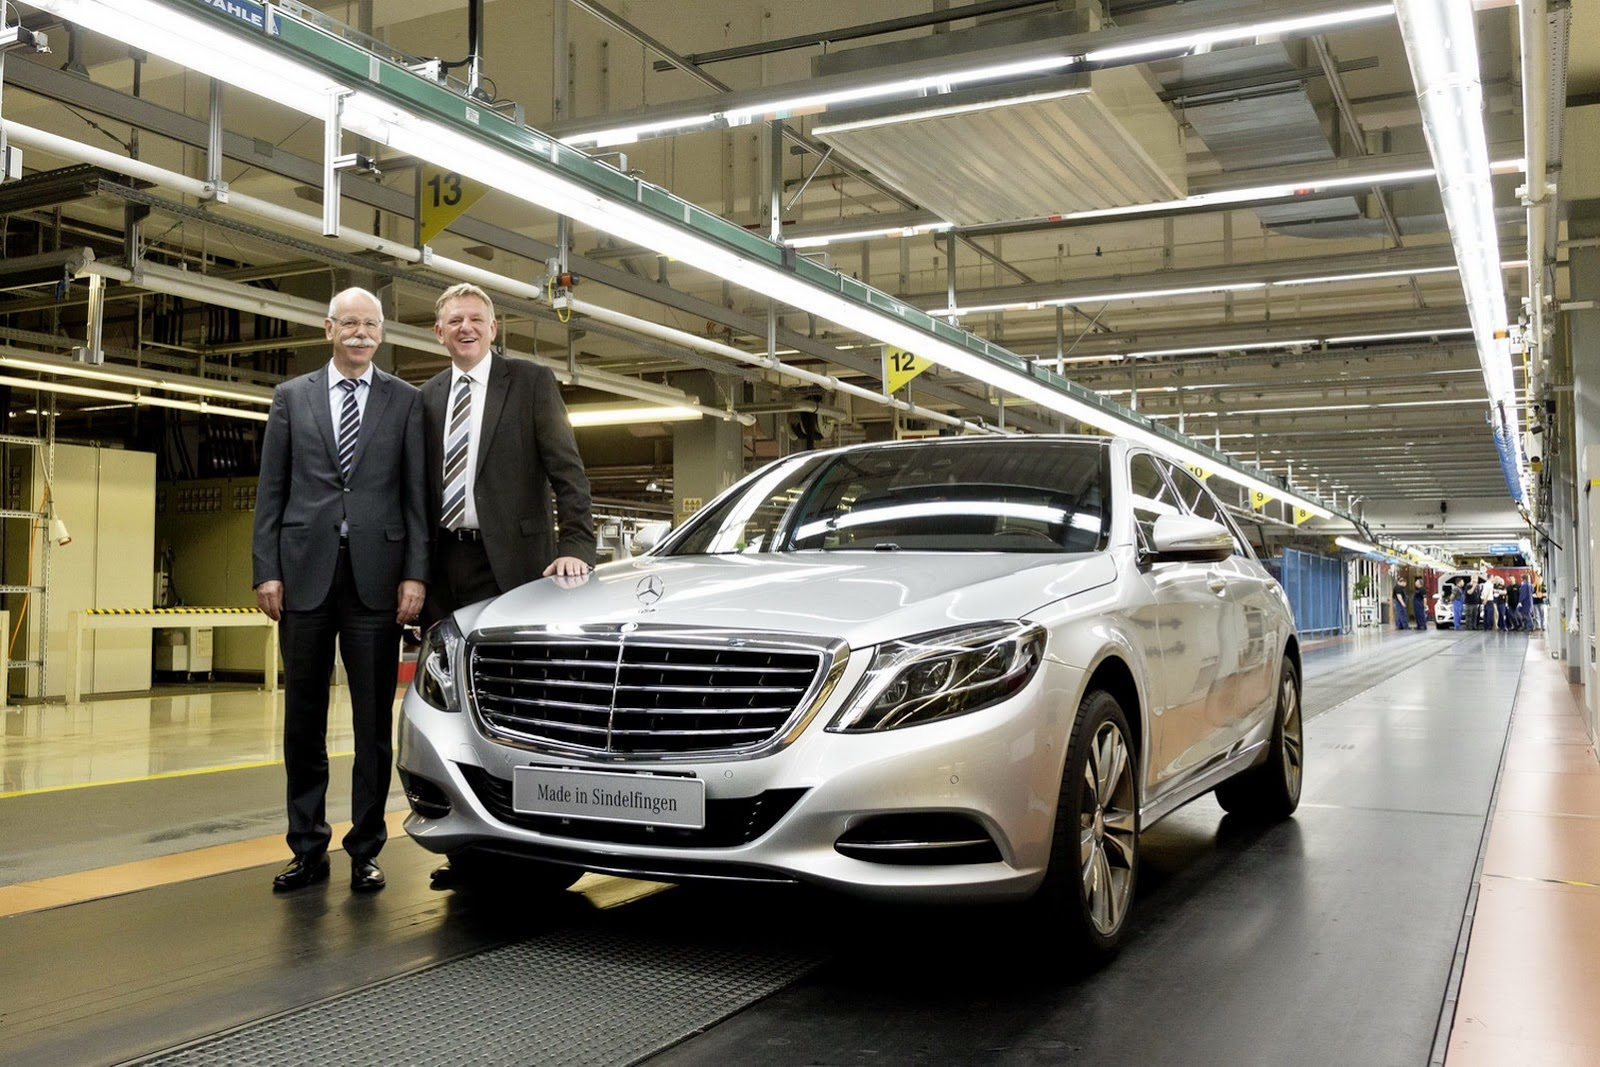 mercedes ditching robots for humans on s-class production line